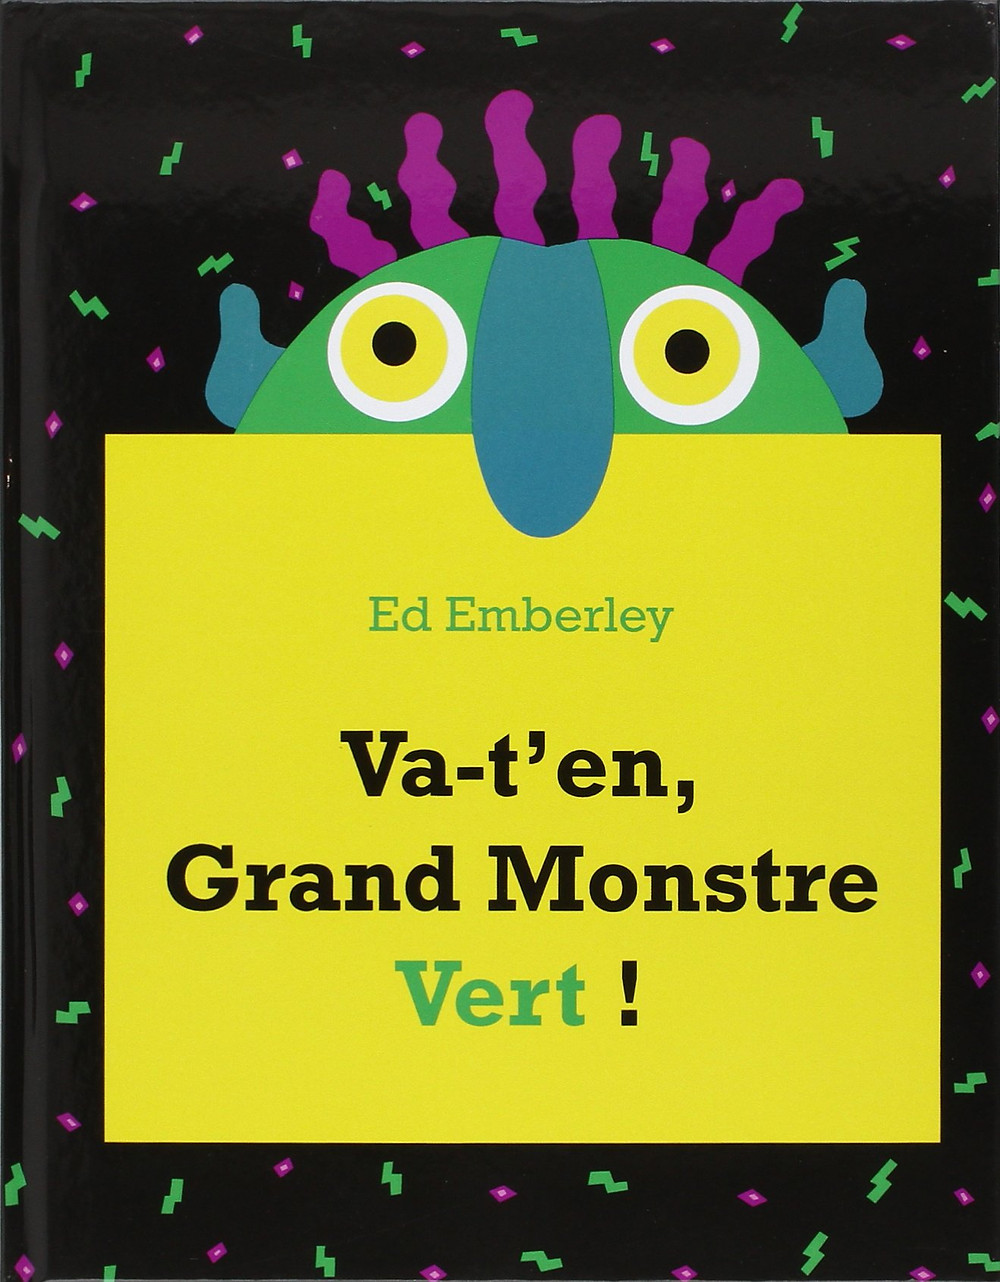 Va-t'en, Grand Monstre! - YouTube